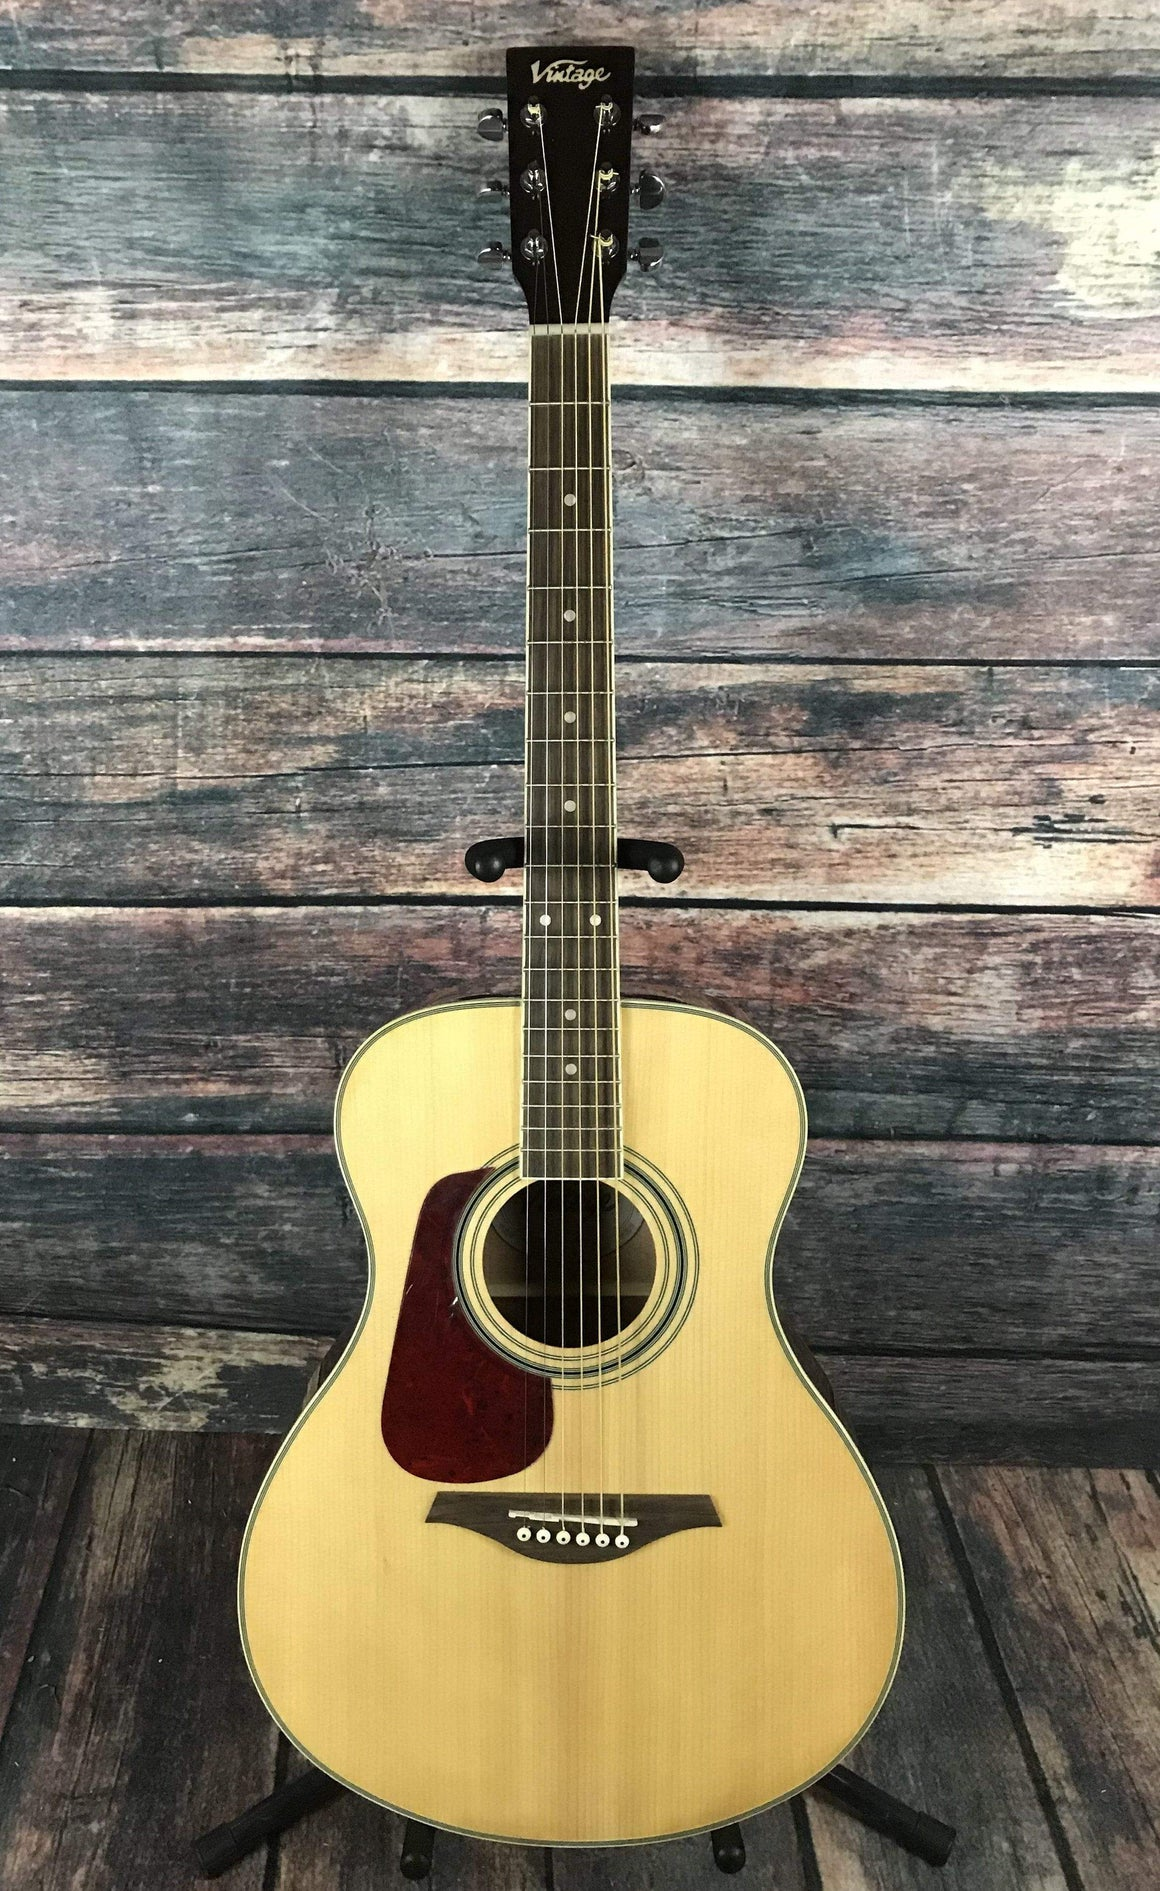 Vintage Acoustic Guitar Vintage Left Handed V300 Folk Sized Acoustic Guitar